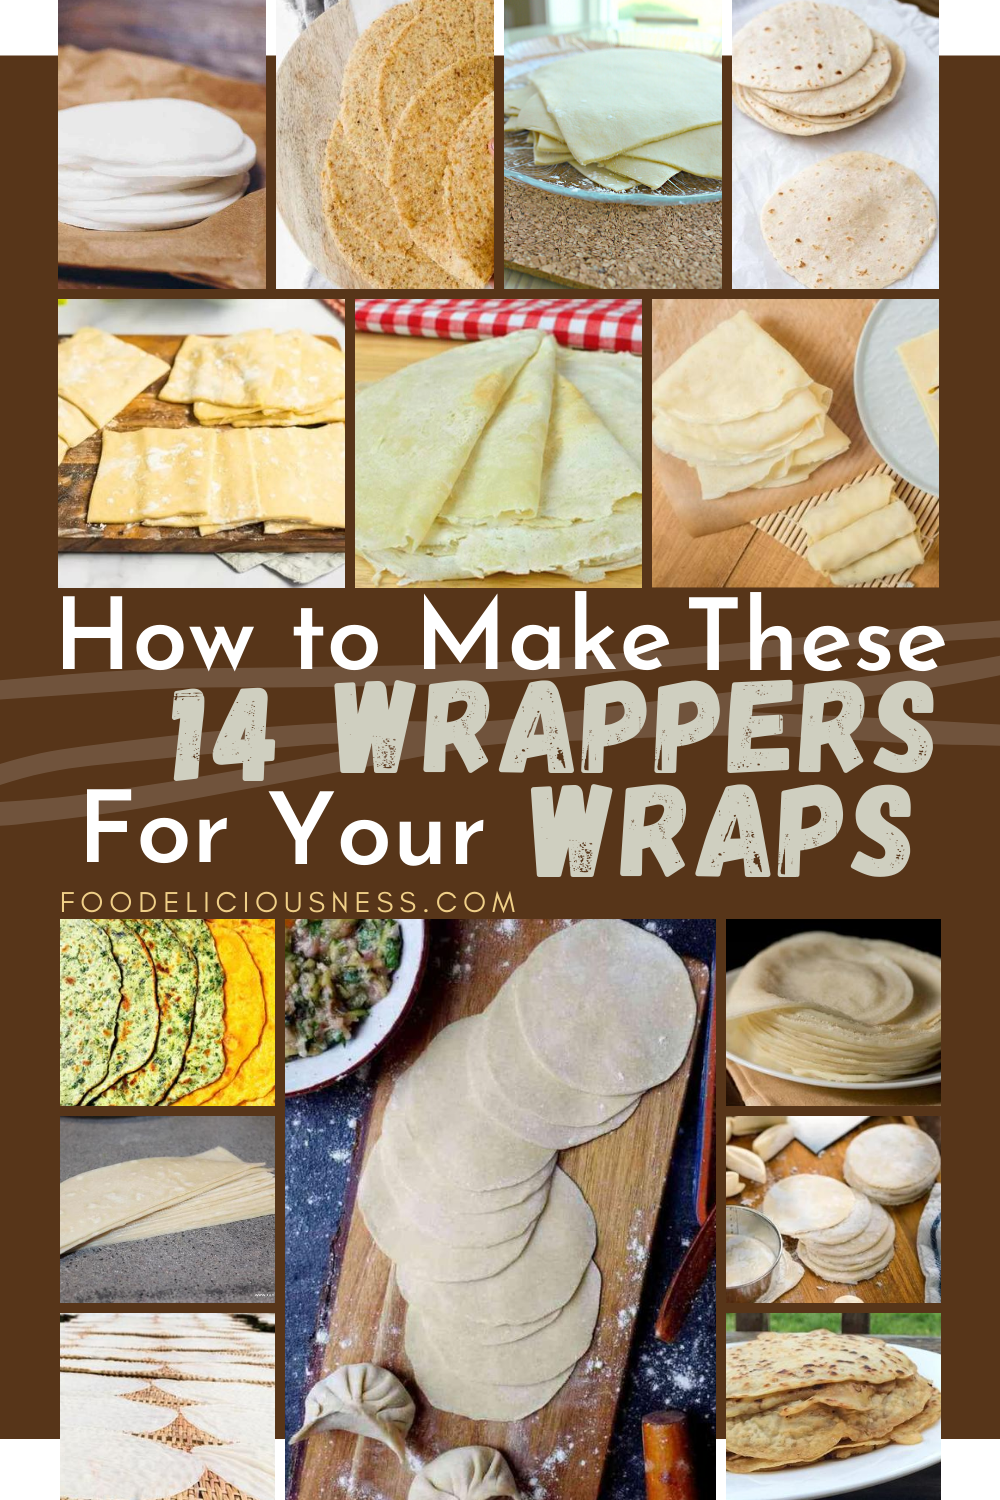 Tortillas, spring rolls, egg rolls, and samosas are wraps. We can also consider dumplings, wonton, and gyoza too simply because there are fillings in each of them. Do you know how to make wrappers for your wraps? I think the most common that you probably have thought of the easiest are the leaves of lettuce or cabbages. How about the others? If you are looking for these recipes, you are on the right page. #homemadewrapper #tortillawrapper #homemadedumpling #howtomakespringroll @Foodelici...